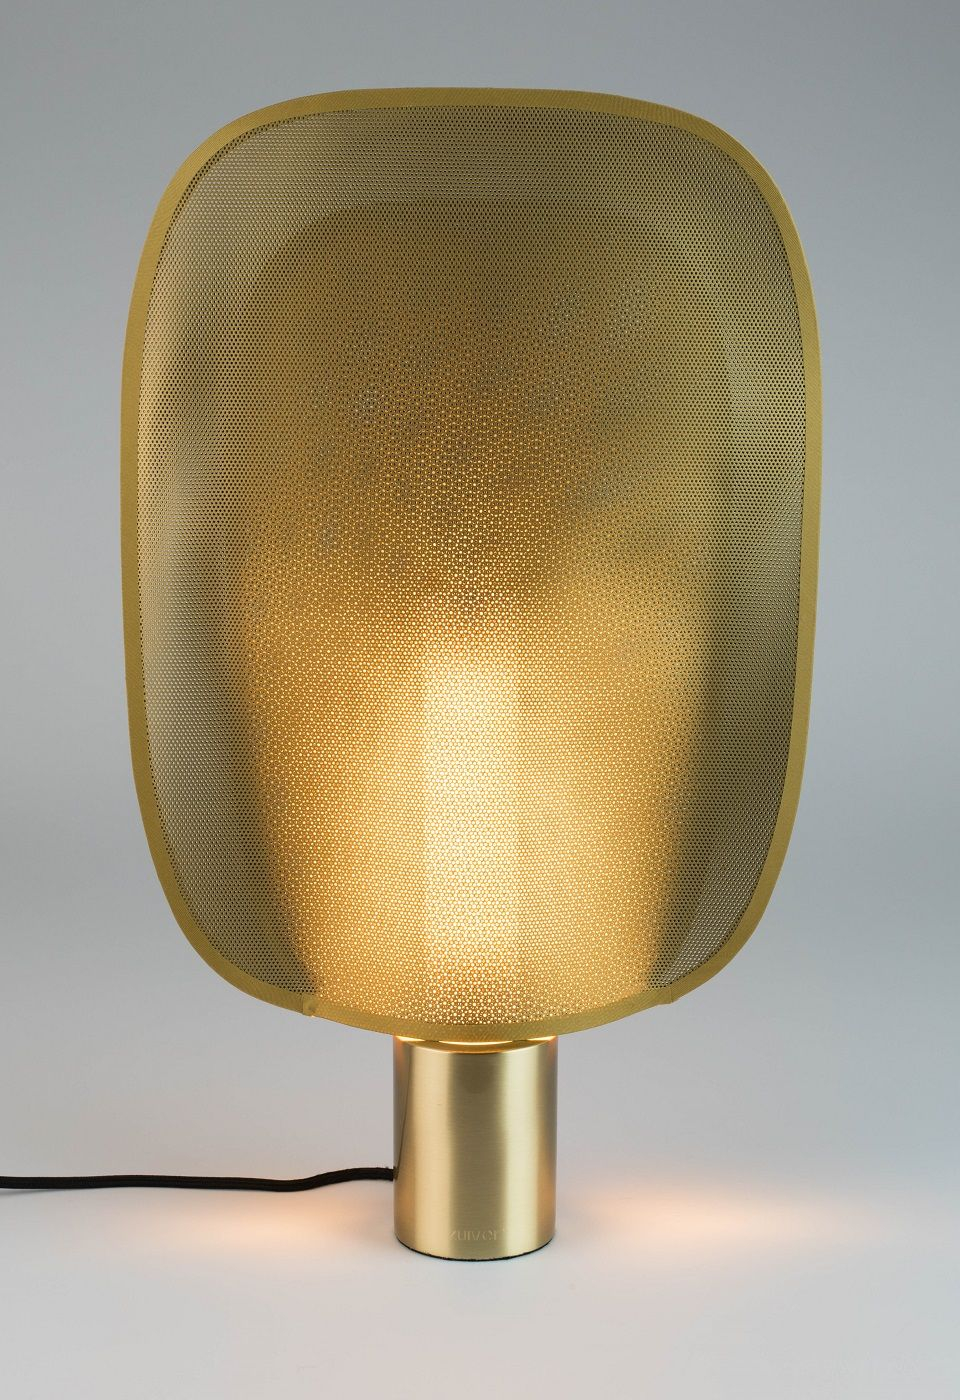 Zuiver Mai M Bordlampe - Messing